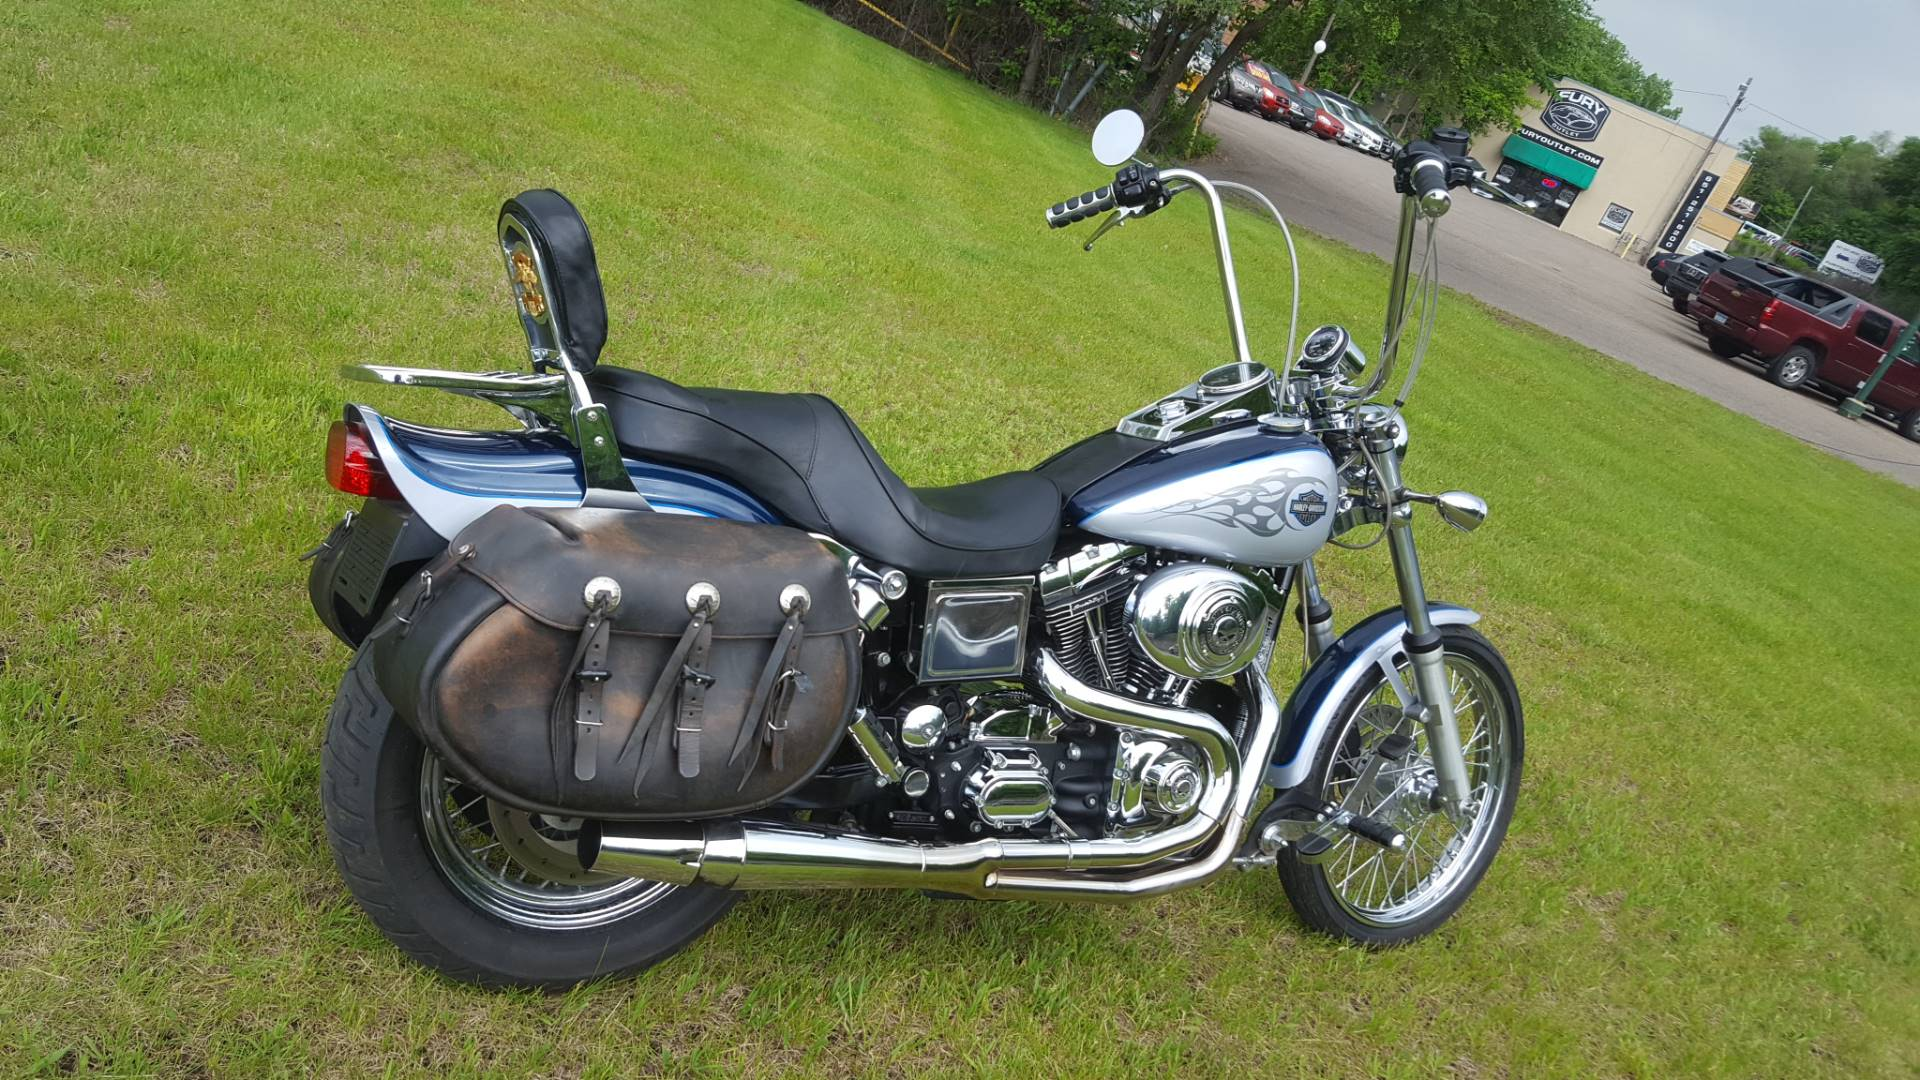 2002 Harley-Davidson FXDWG Dyna Wide Glide® in South Saint Paul, Minnesota